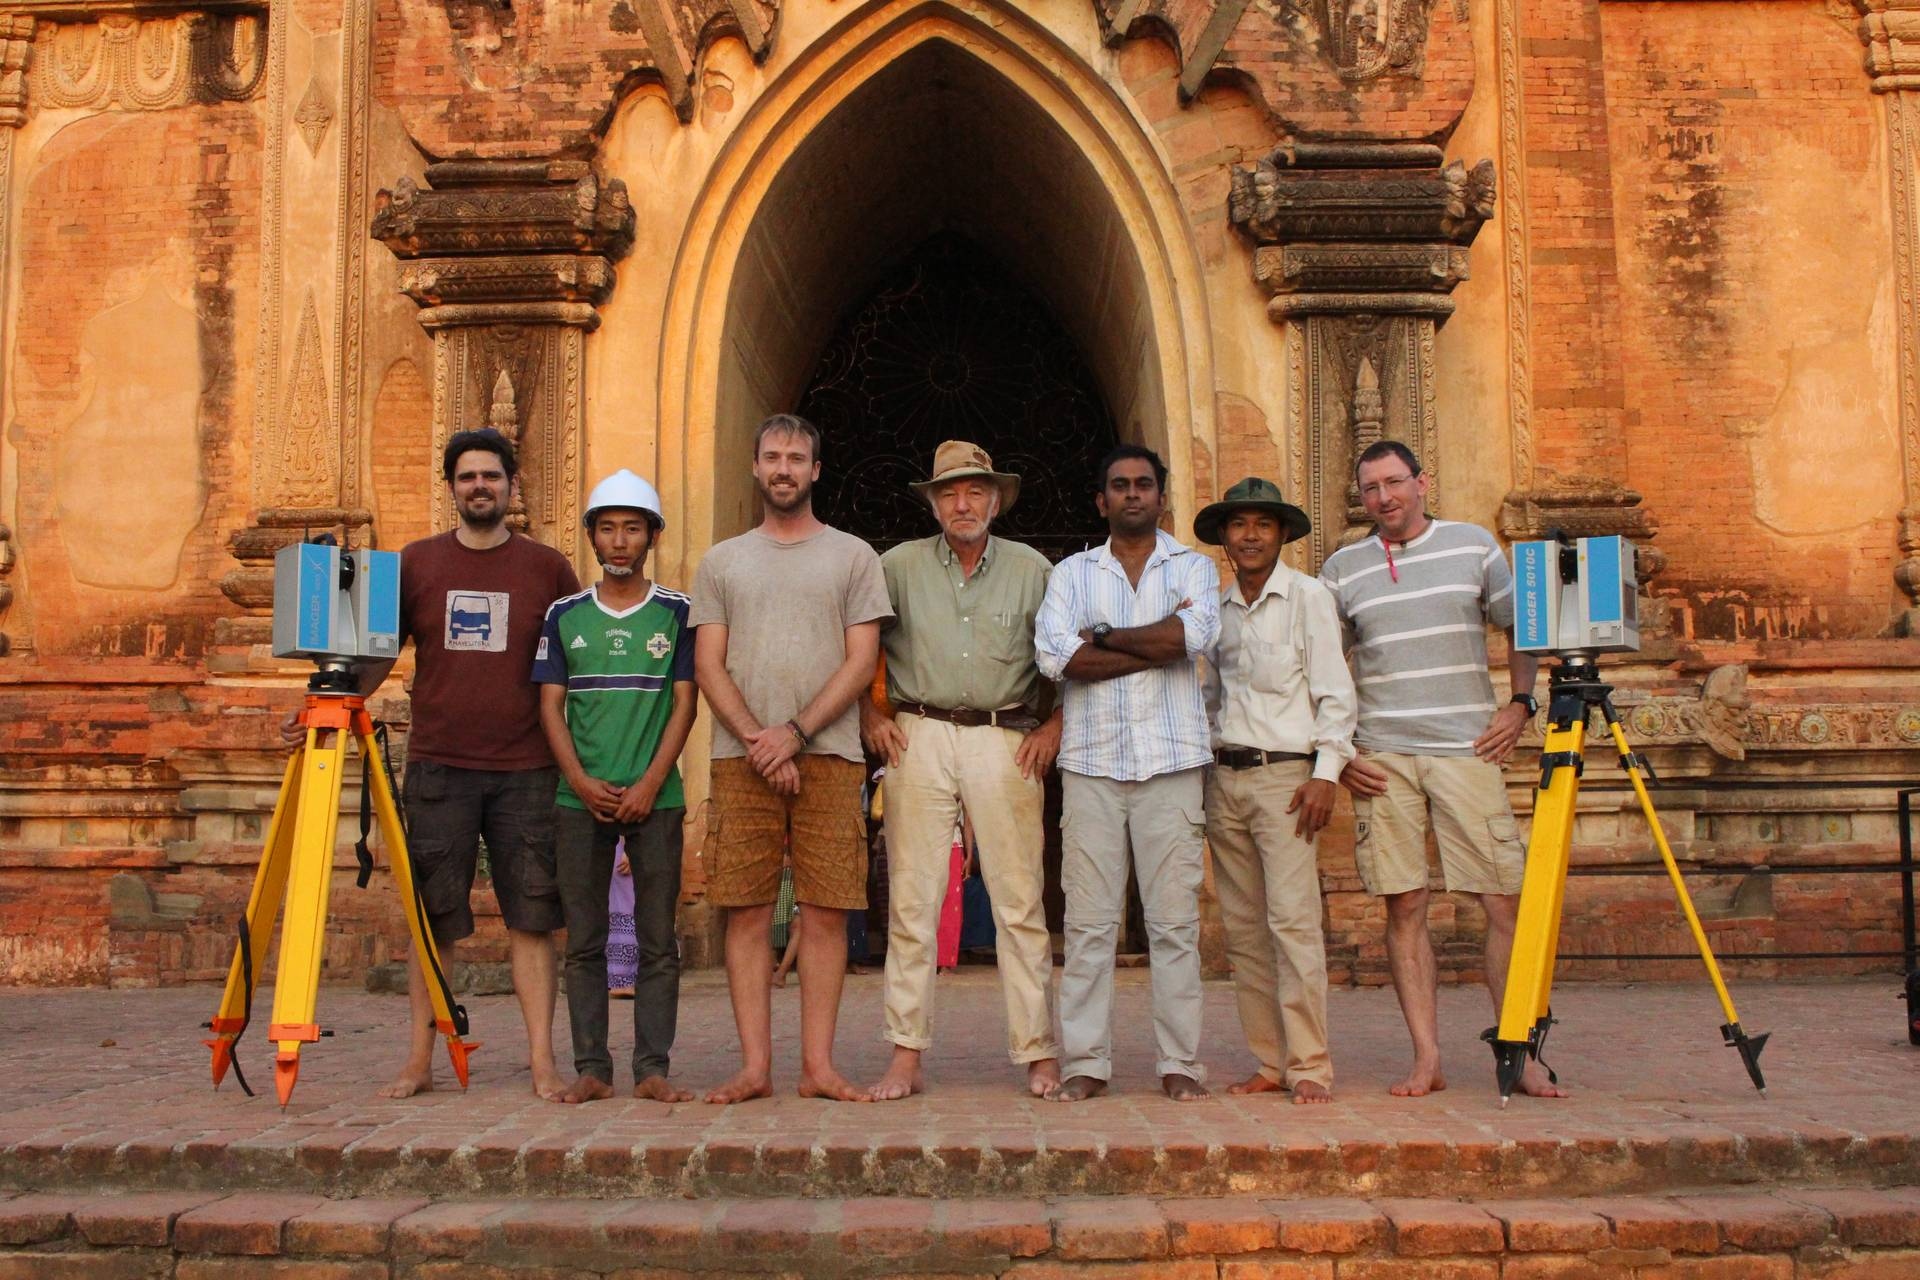 The Zamani team plus two assistants: (from left) Christoph Held, Thu Ya Kyaw (assistant), Stephen Wessels, Emer Prof Heinz Ruther, Roshan Bhurtha, Soe Win Htay (assistant) and Ralph Schroeder.